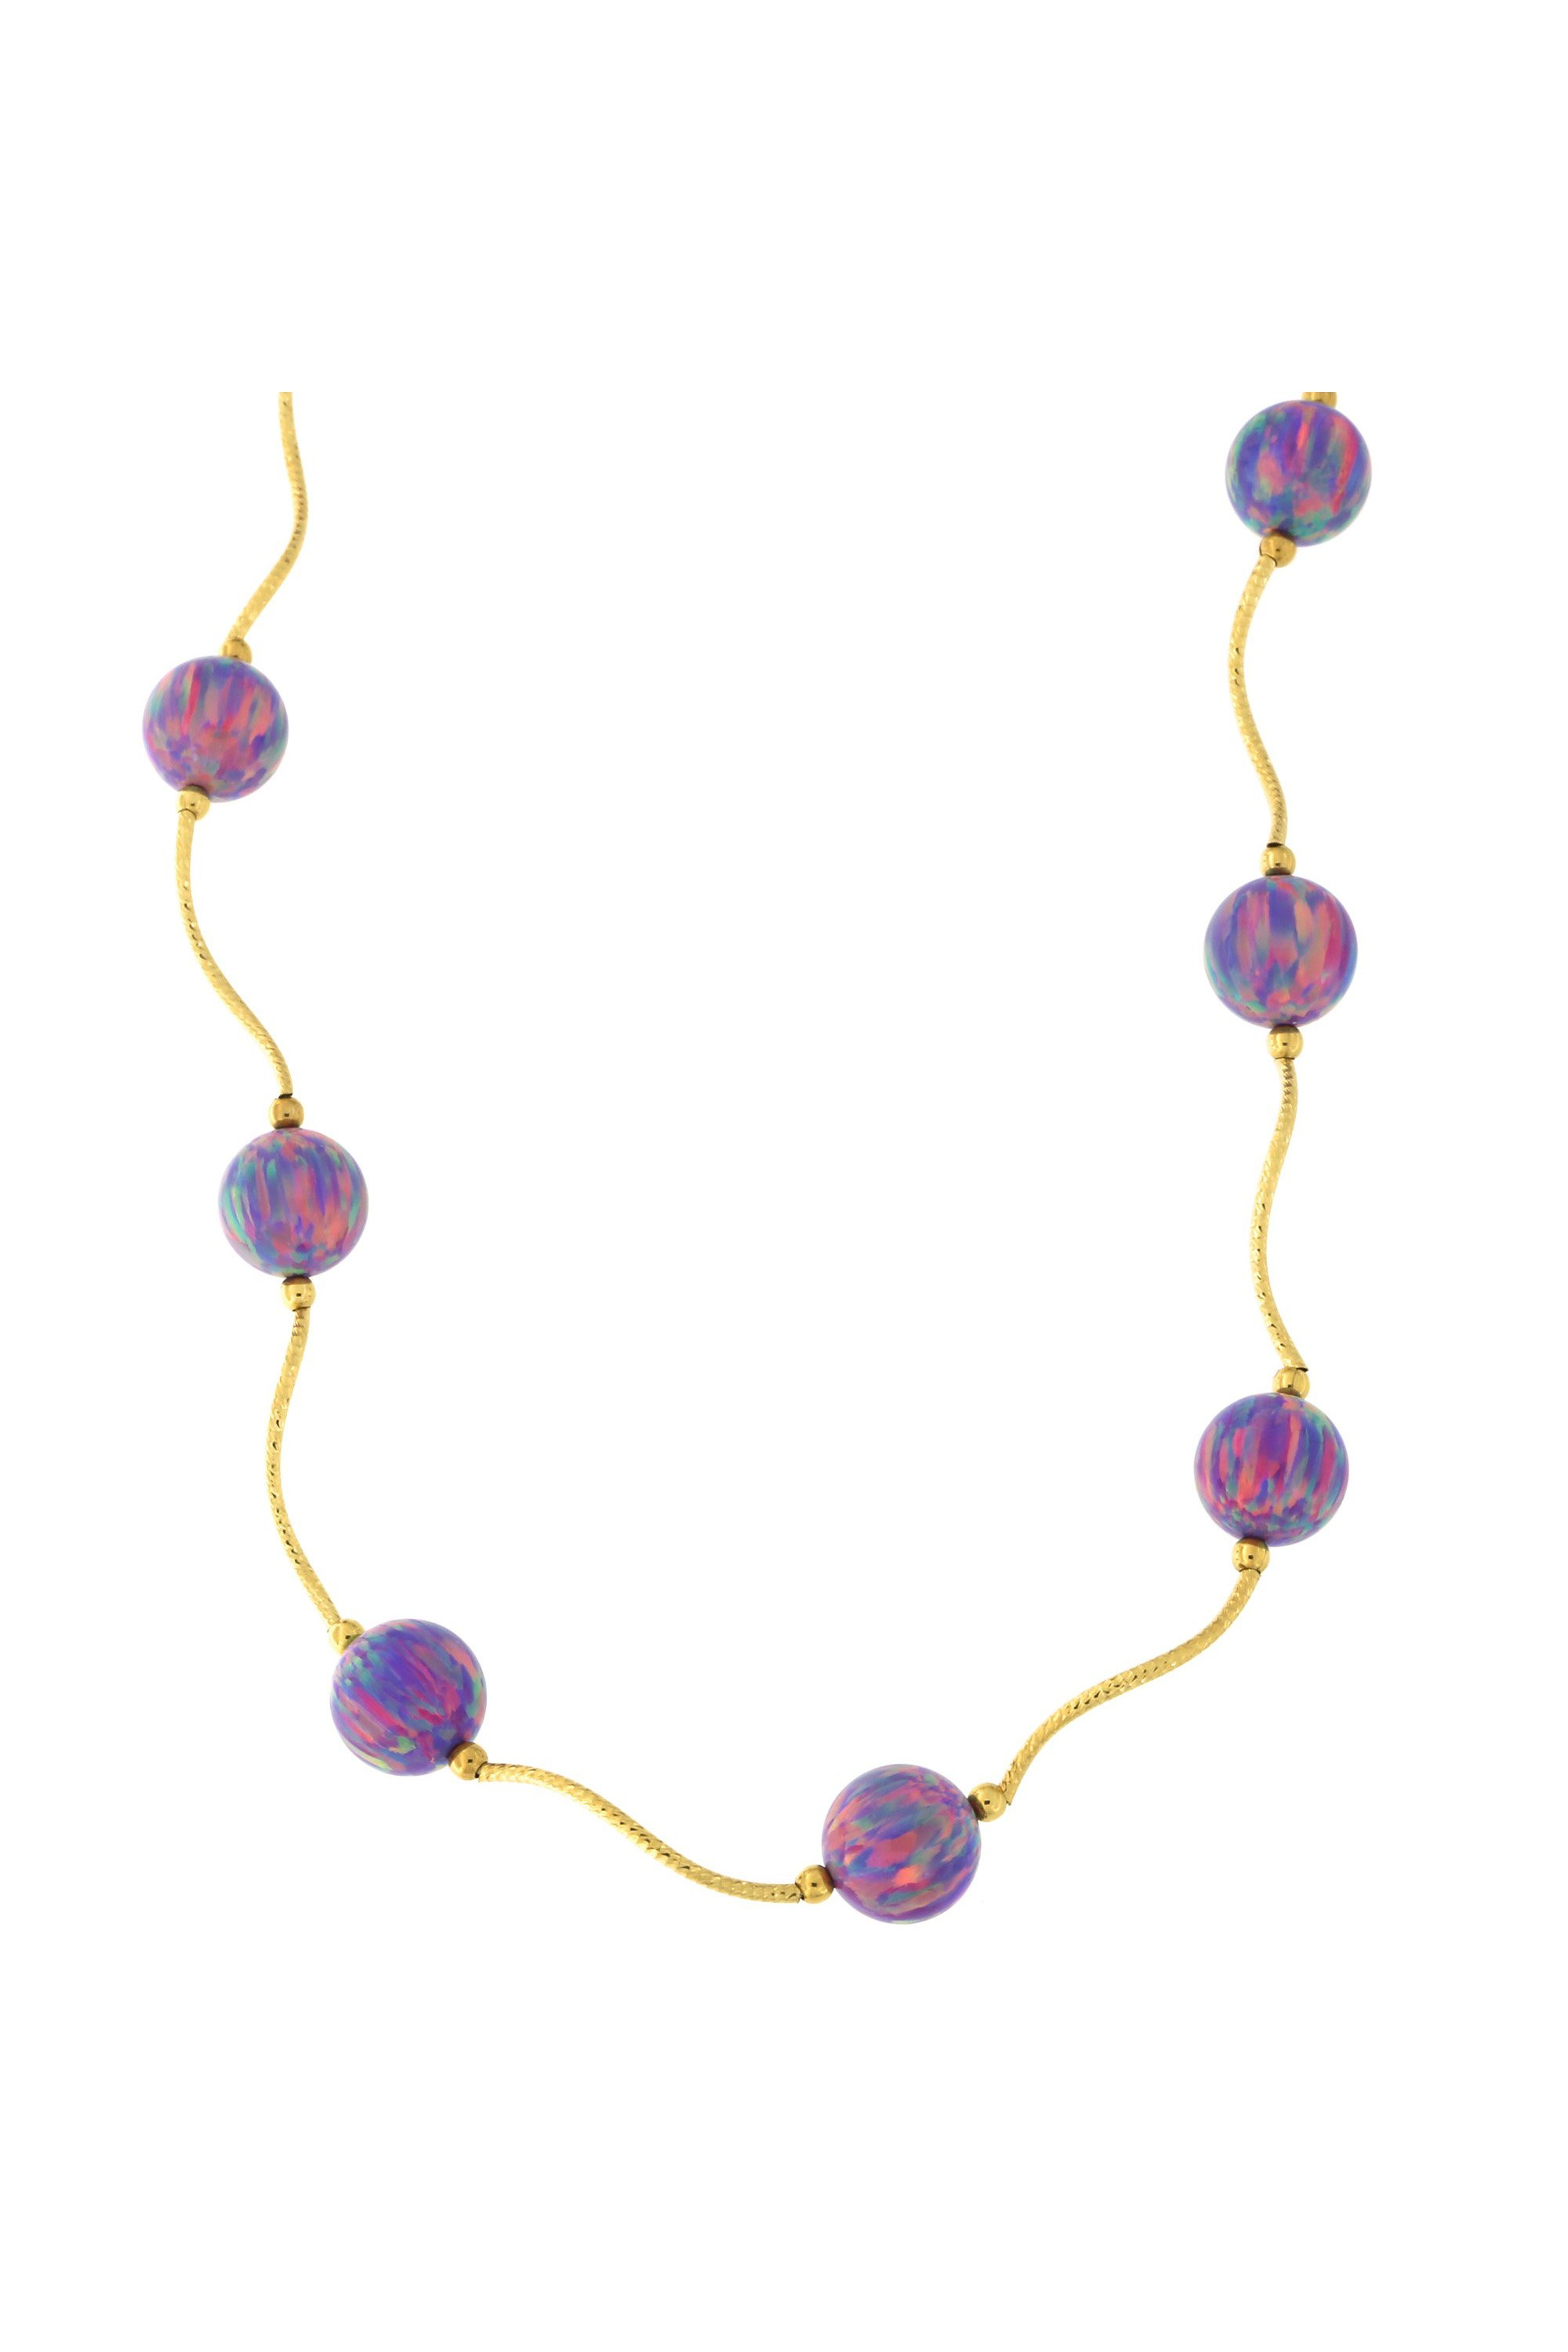 Beauniq 14k Yellow Gold Diamond Cut 8mm Simulated Purple Opal Station Necklace, 18.5 inches by